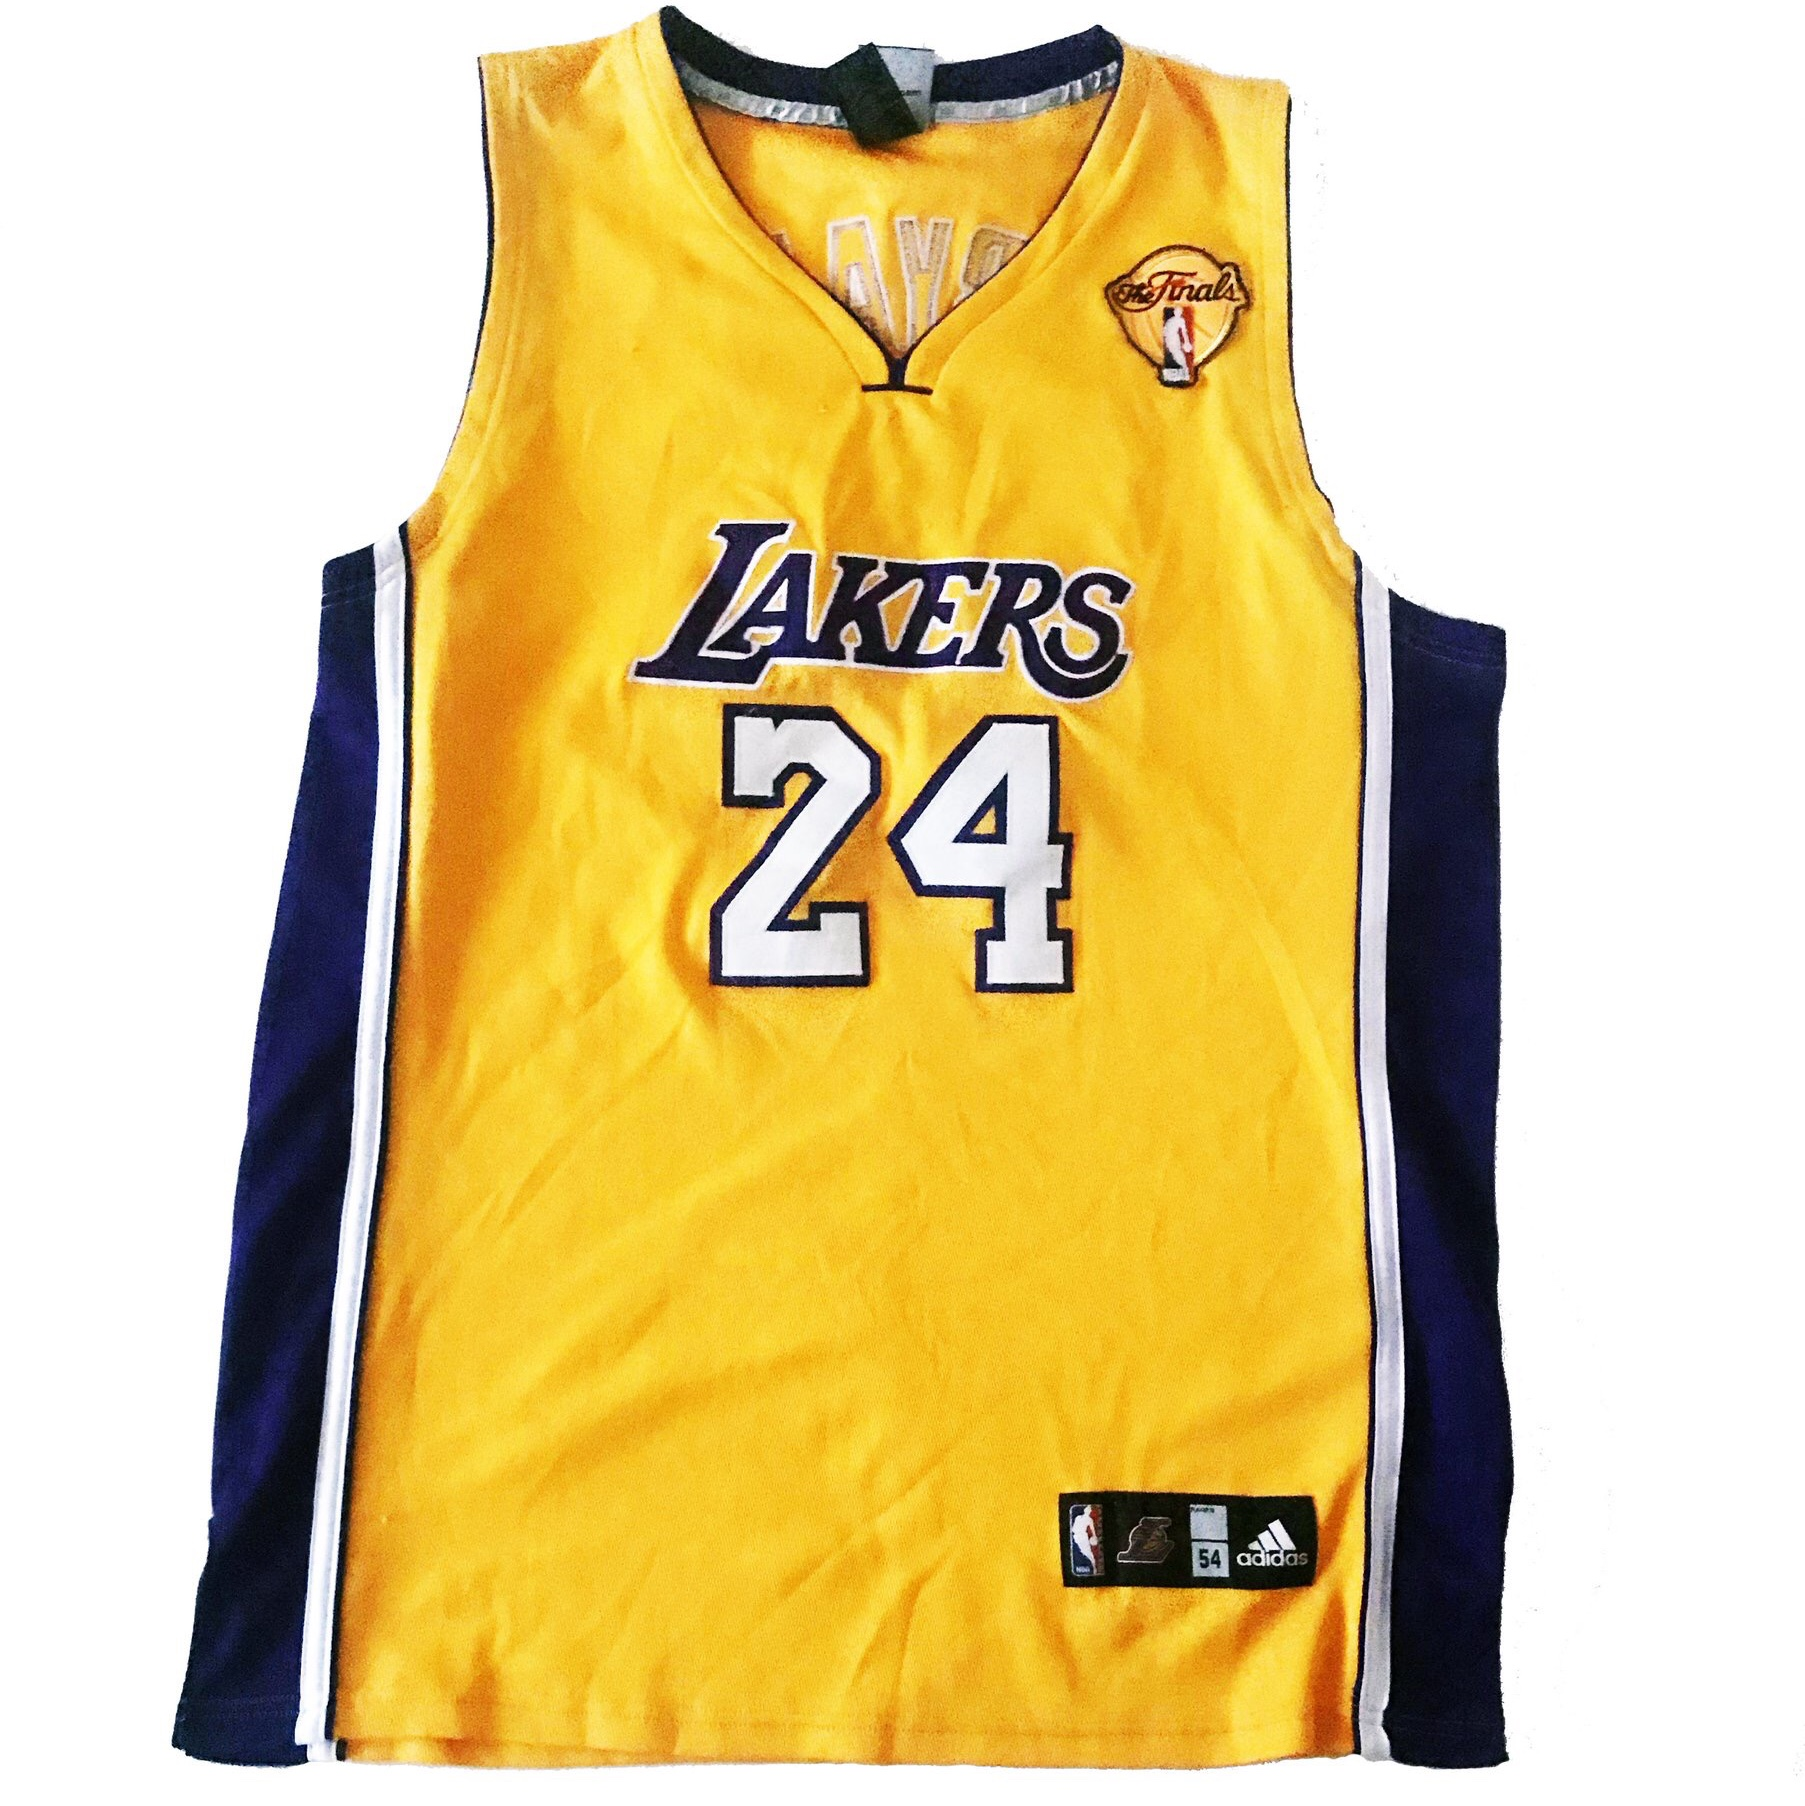 low priced 4cd53 62d6f Kobe Bryant Authentic 2010 NBA Finals Lakers Jersey ...